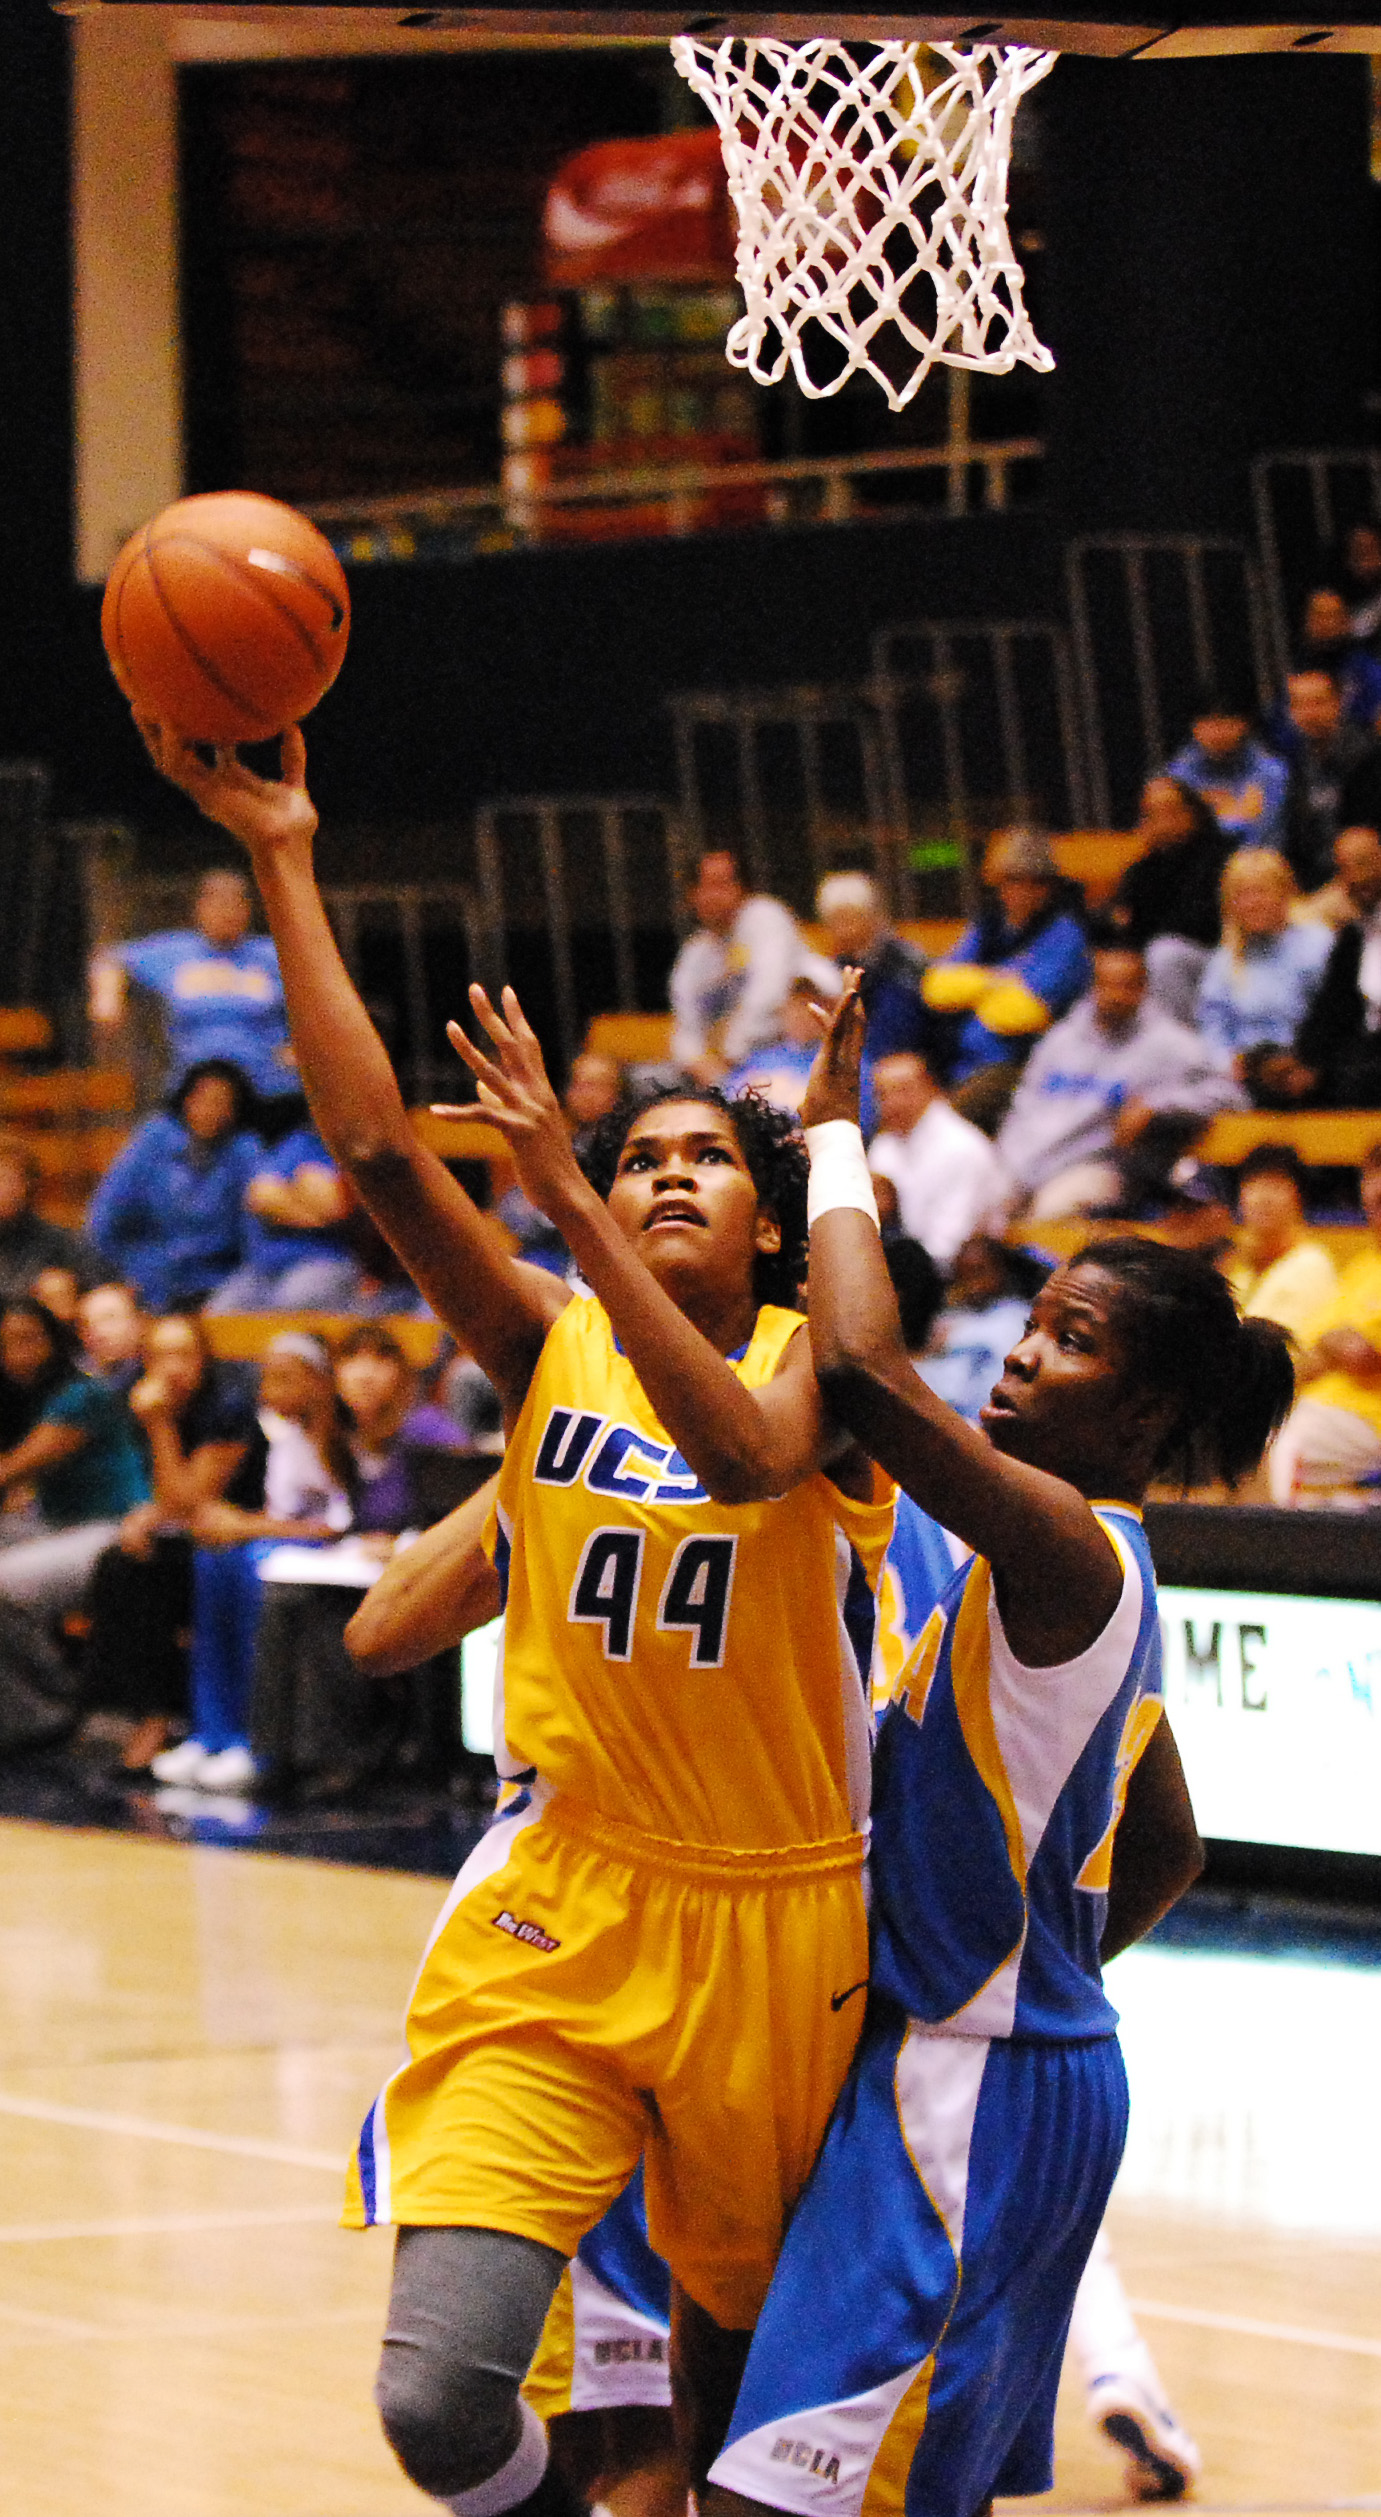 UCSB's Mekia Valentine goes up for a layup against the Bruins.